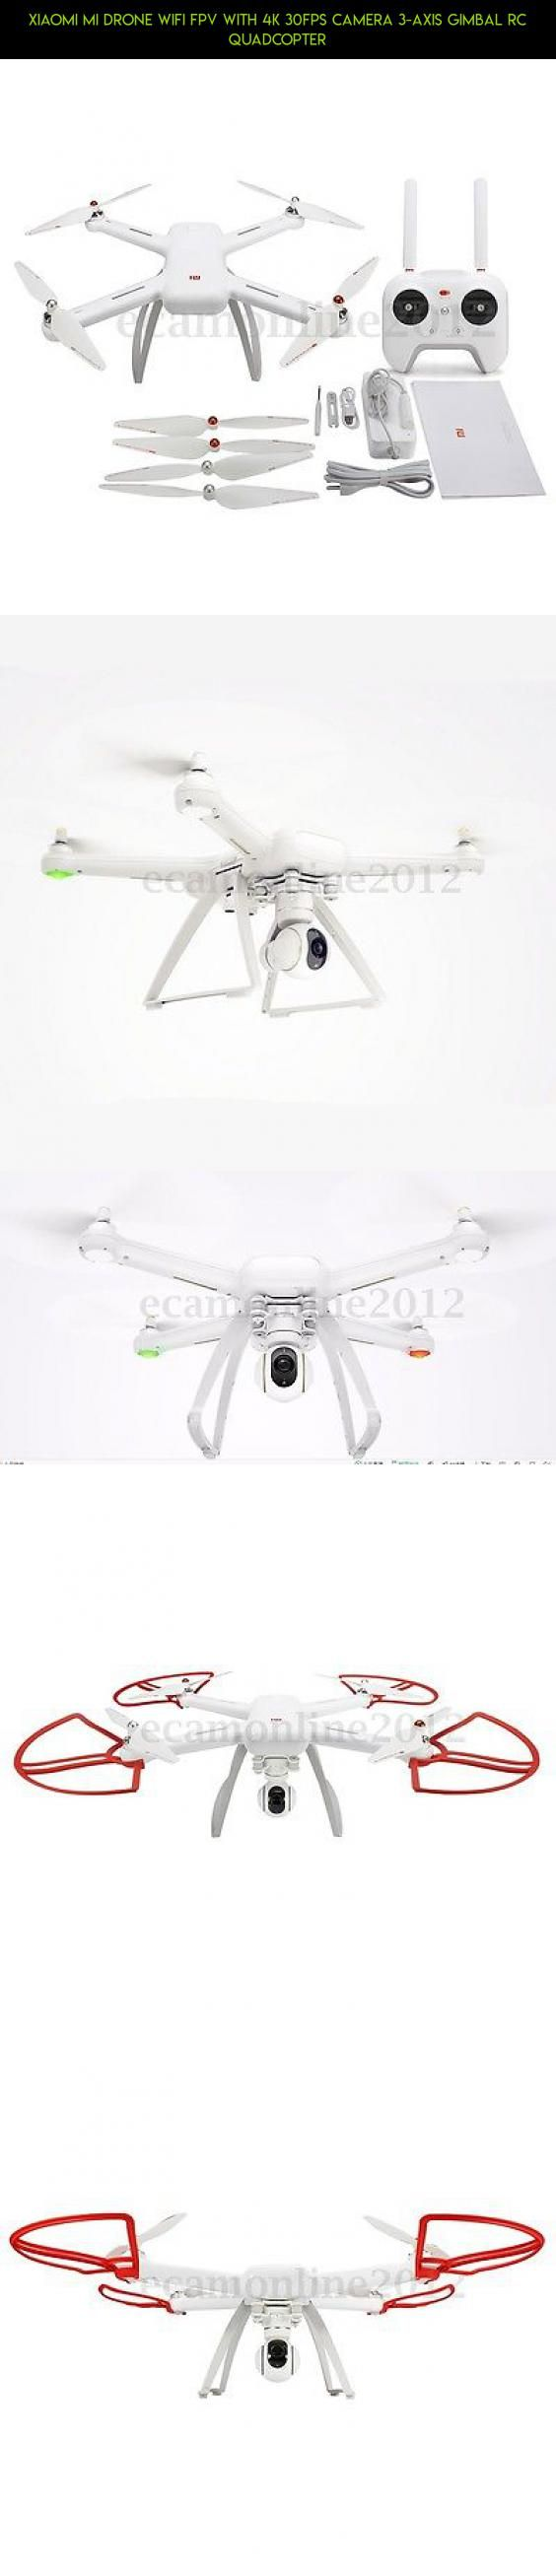 Xiaomi Mi Drone WIFI FPV With 4K 30fps Camera 3-Axis Gimbal RC Quadcopter #drone #30fps #mi #4k #with #xiaomi #fpv #gadgets #technology #kit #fpv #plans #wifi #products #drone #parts #racing #shopping #tech #camera